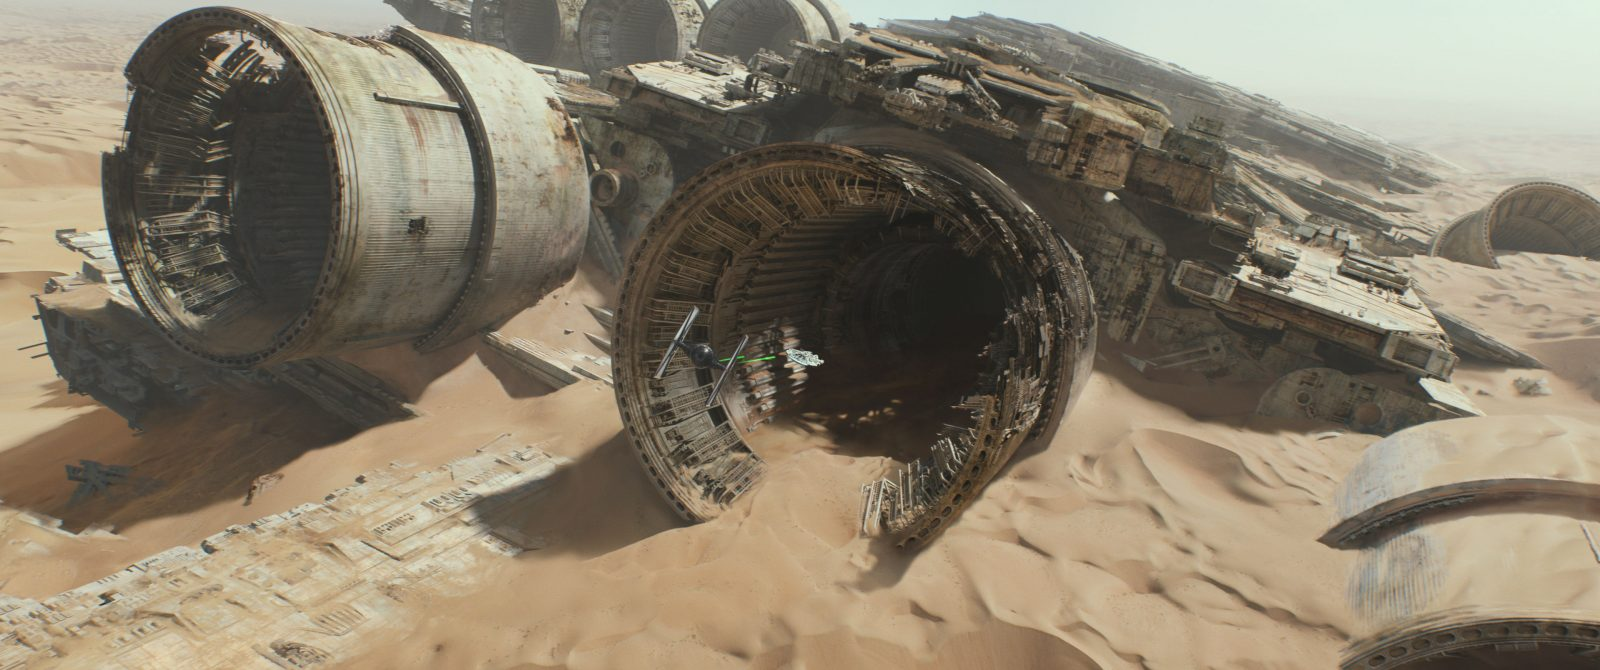 Star Wars VII The Force Awakens 19 - TIE Fighter chases Millennium Falcon into old starship